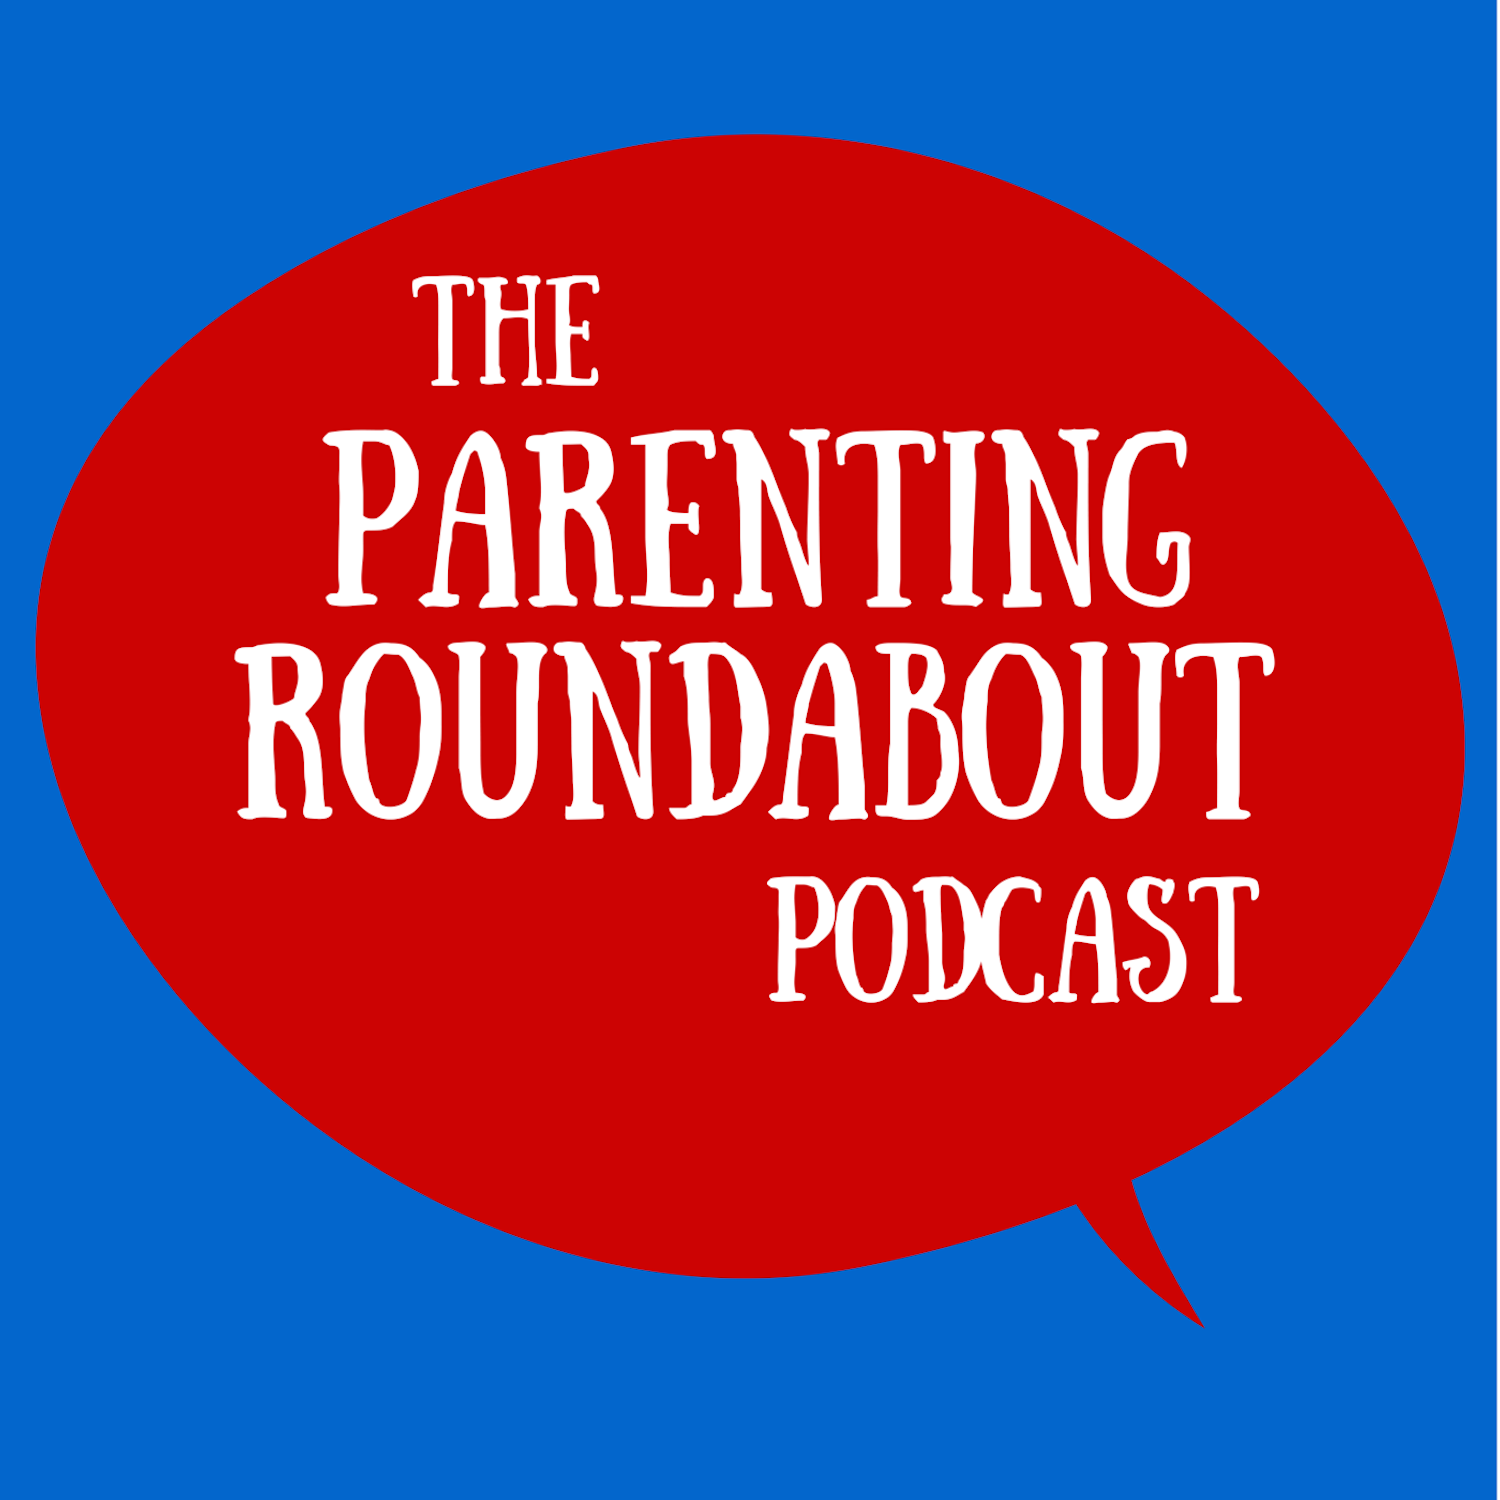 Roundabout Roundup: Project Runway, Comments by Celebs, and Tomato Timer